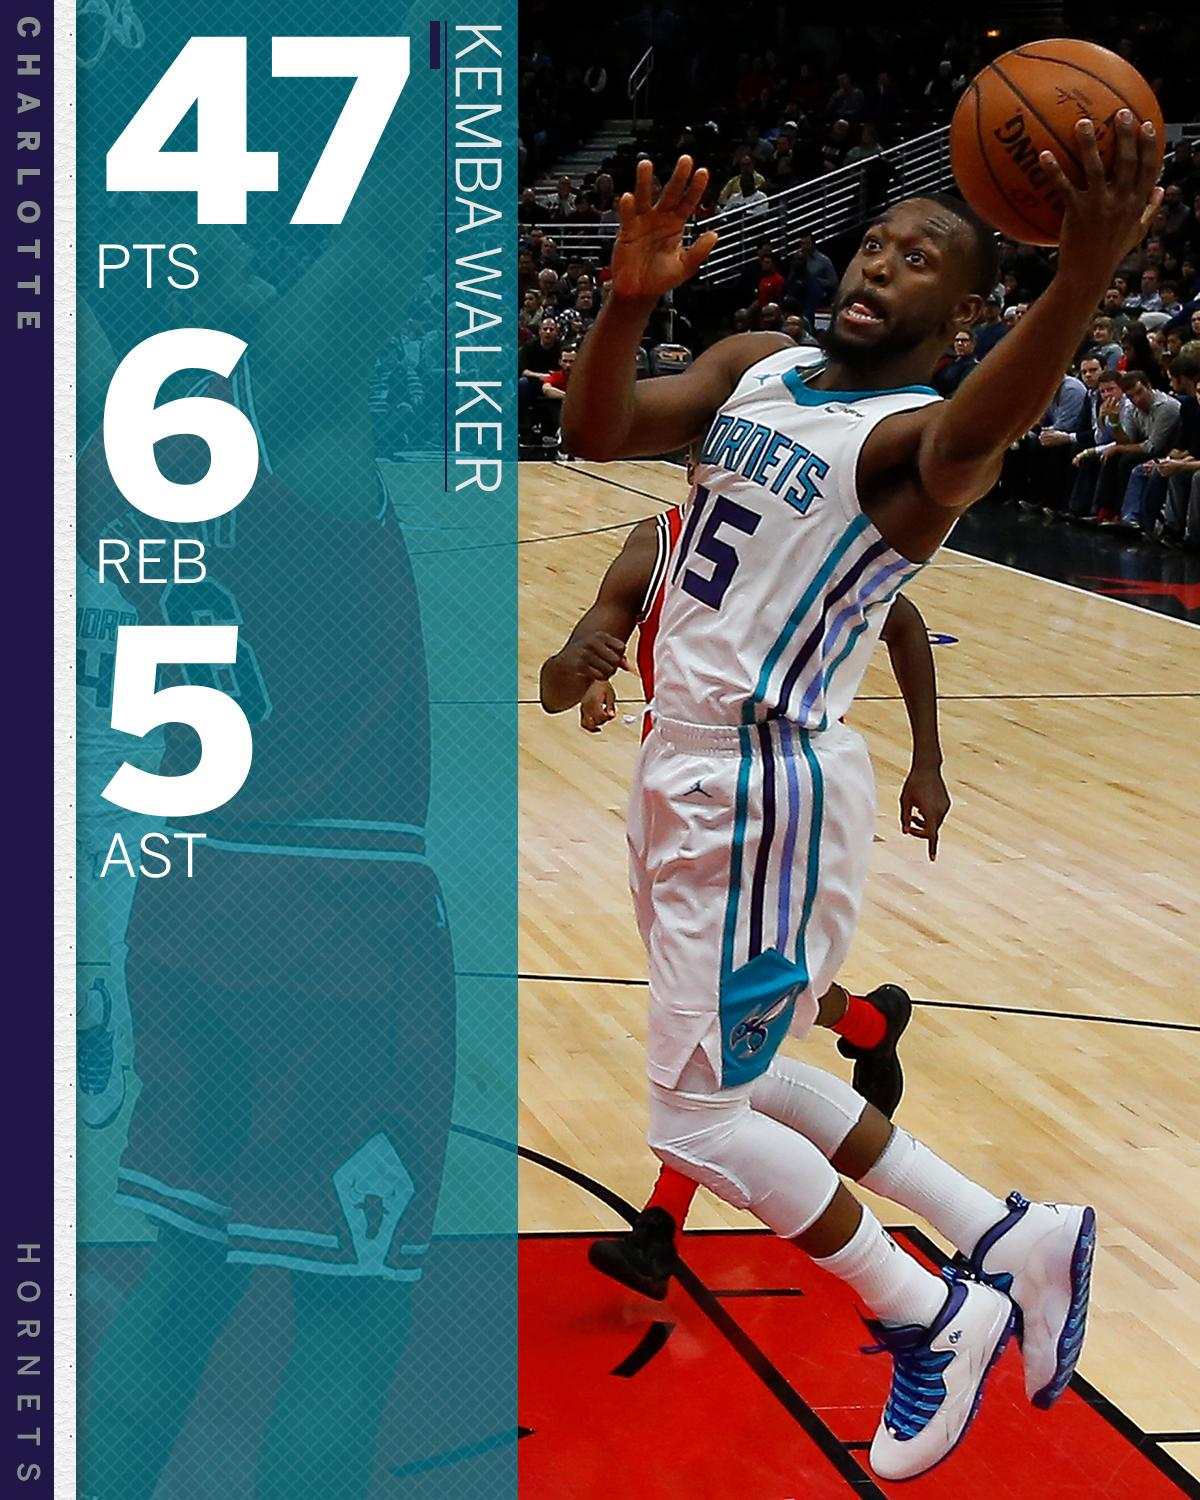 Despite losing to the Bulls, Kemba Walker balled out tonight �� https://t.co/4tvcWmOJ9R